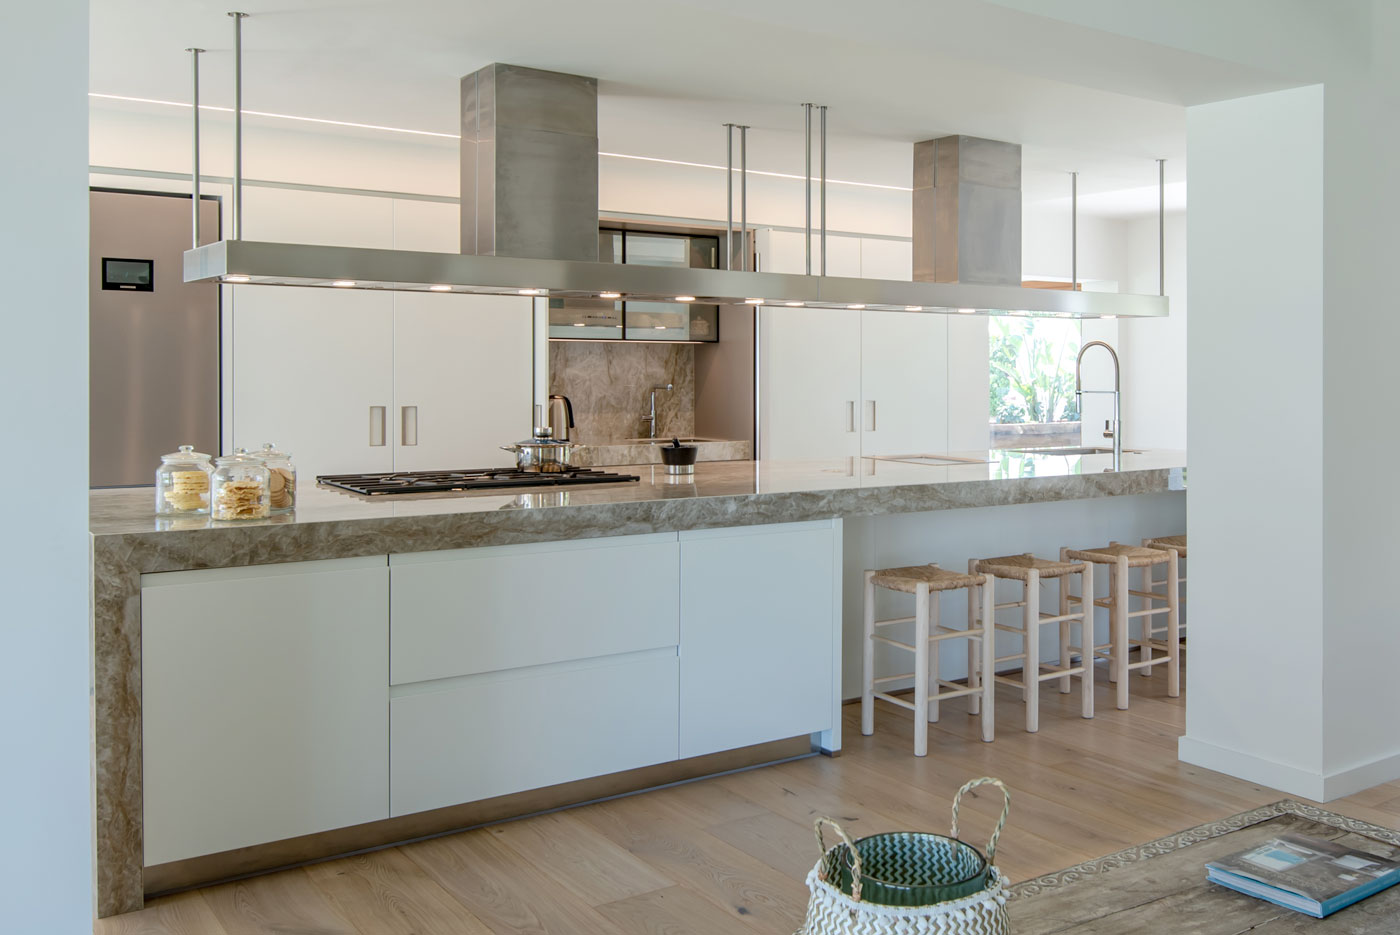 Kitchen refurbished by Overlord by Sergi Quílez i Marin